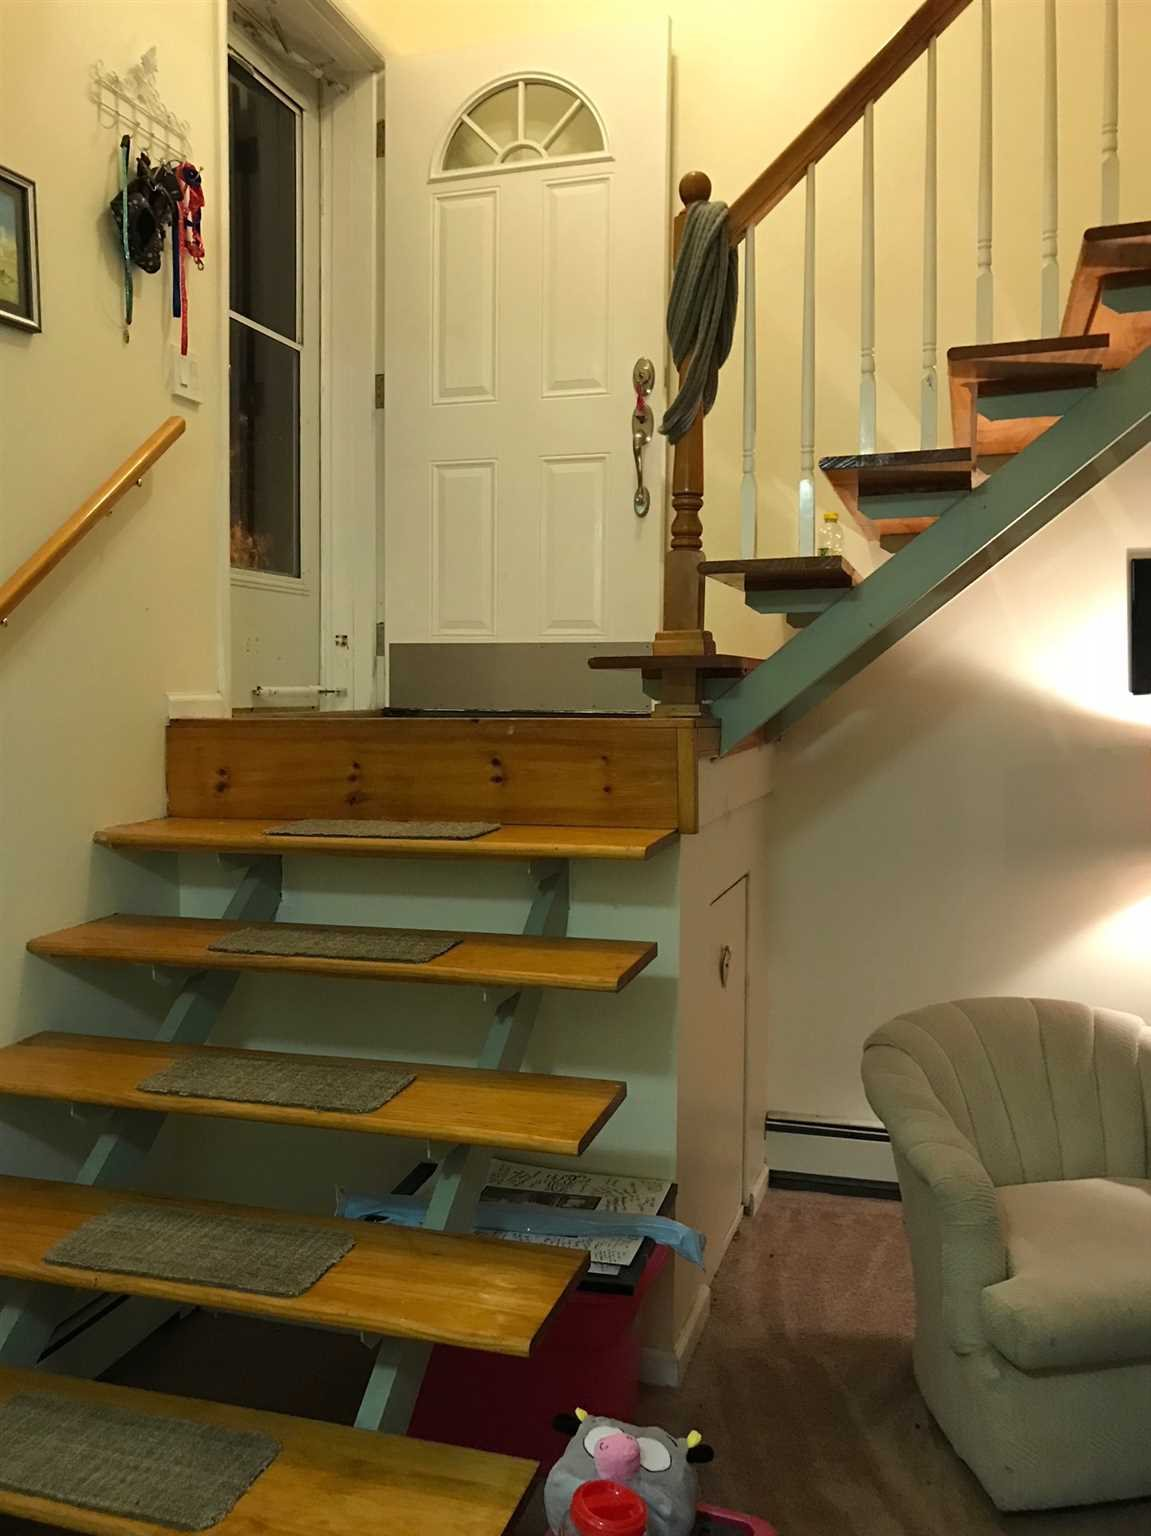 Single Family Home for Sale at 13 ALPINE Drive 13 ALPINE Drive Wappingers Falls, New York 12590 United States